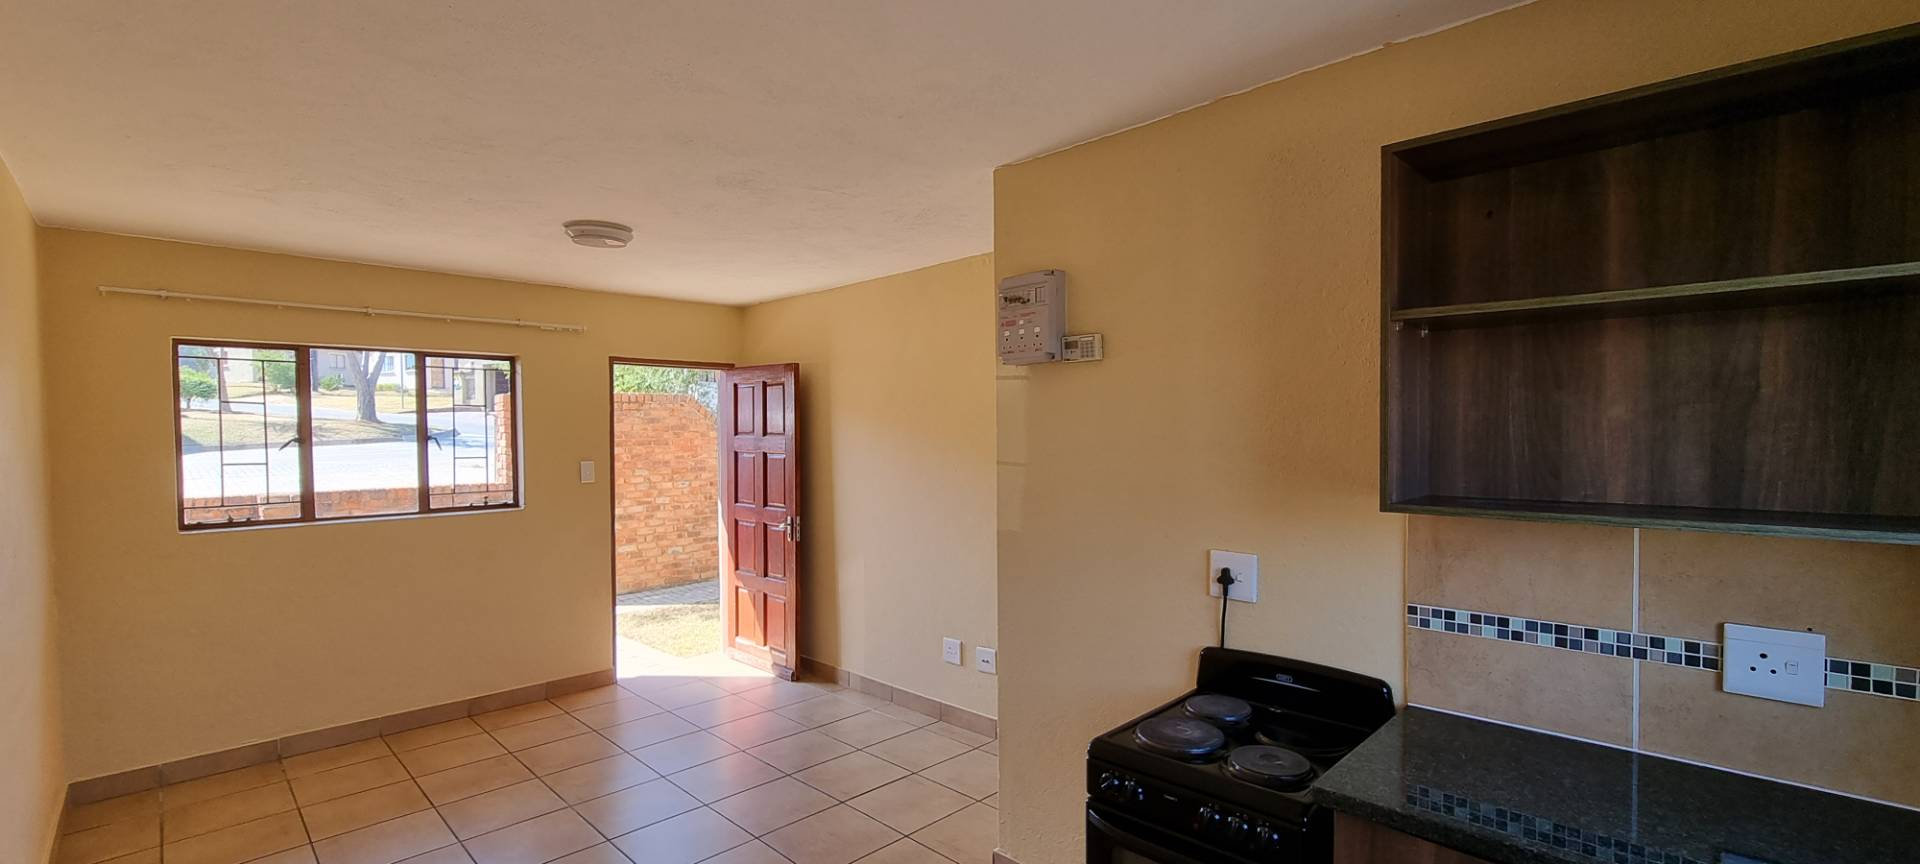 Apartment For Sale in Karino